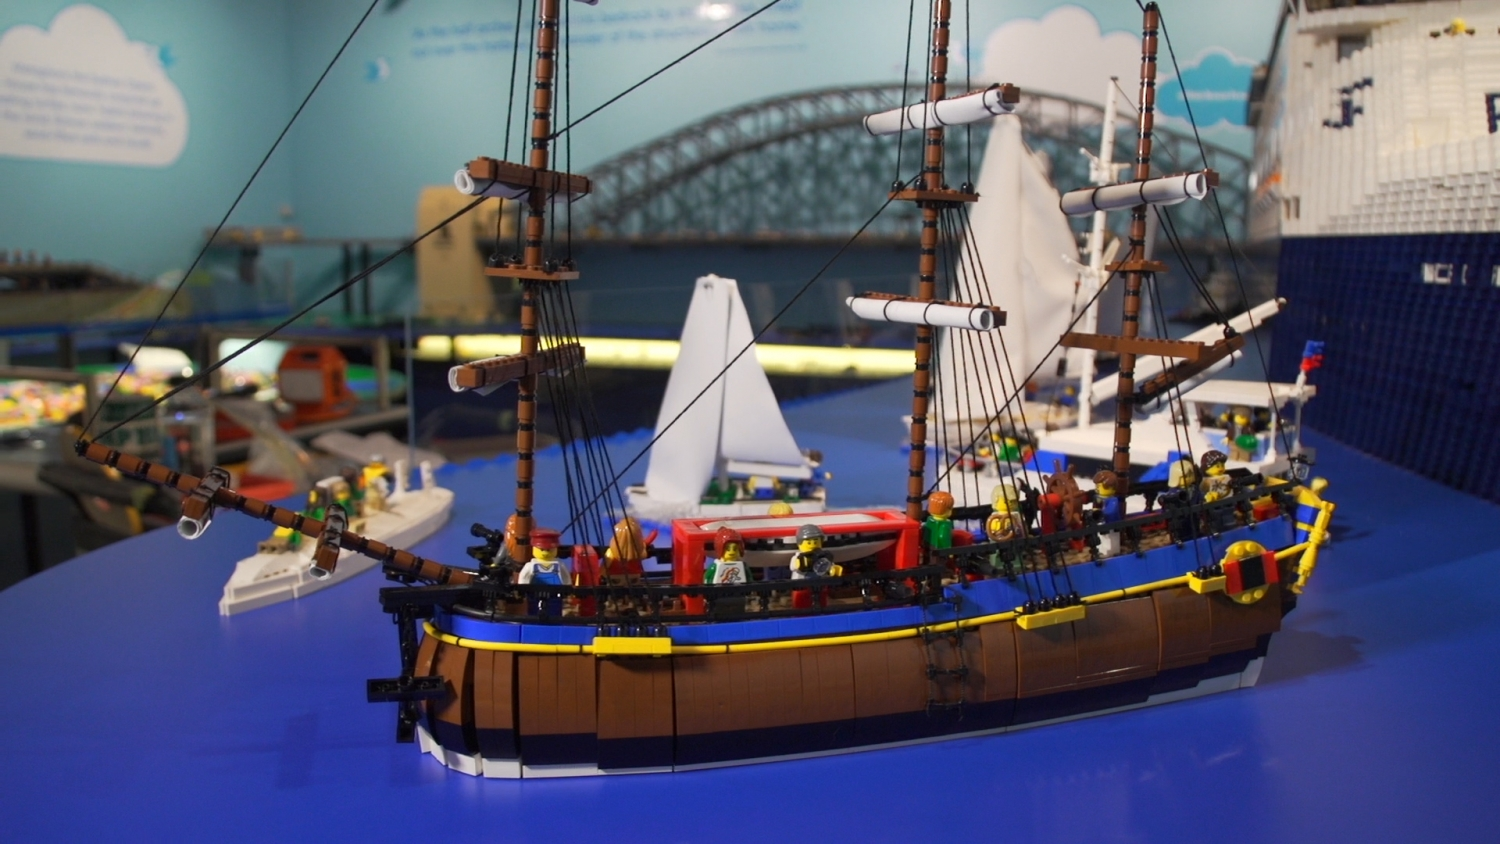 Colourful model of three masted tall ship built in LEGO bricks.